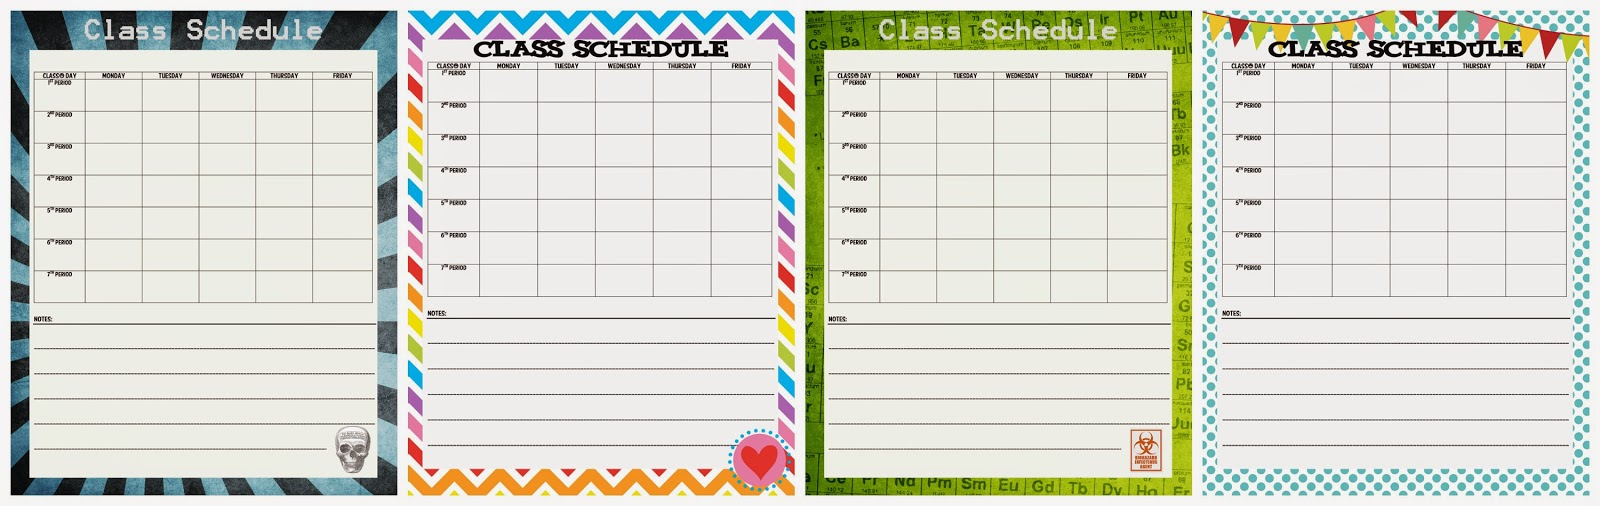 junior high class schedule printable free time frolics